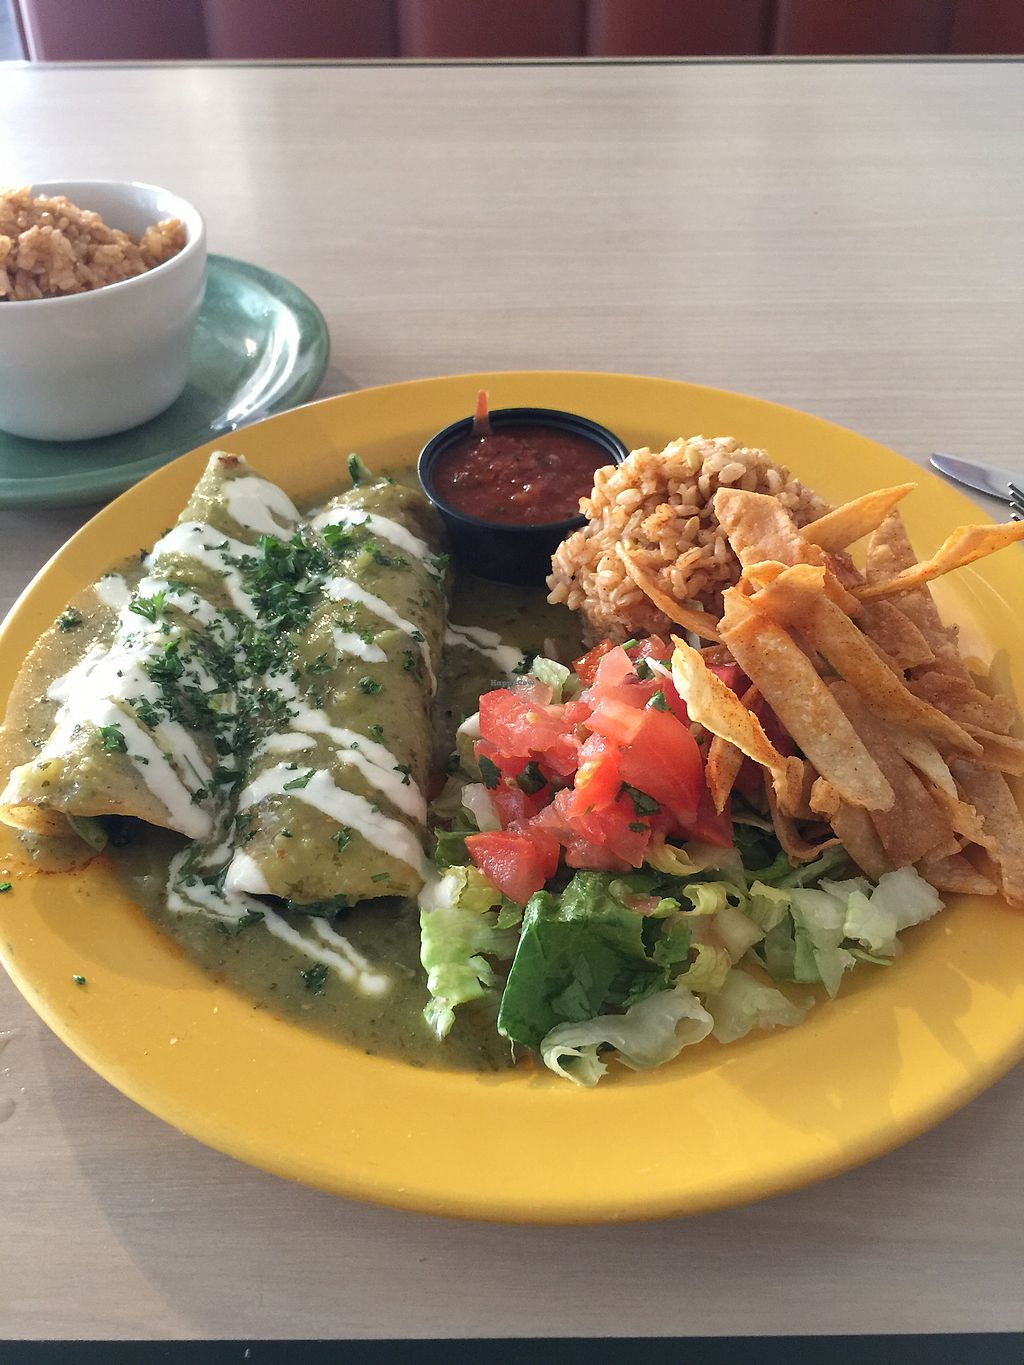 """Photo of Senor Veggie  by <a href=""""/members/profile/andoba"""">andoba</a> <br/>Enchiladas Verdes <br/> December 15, 2017  - <a href='/contact/abuse/image/37190/335845'>Report</a>"""